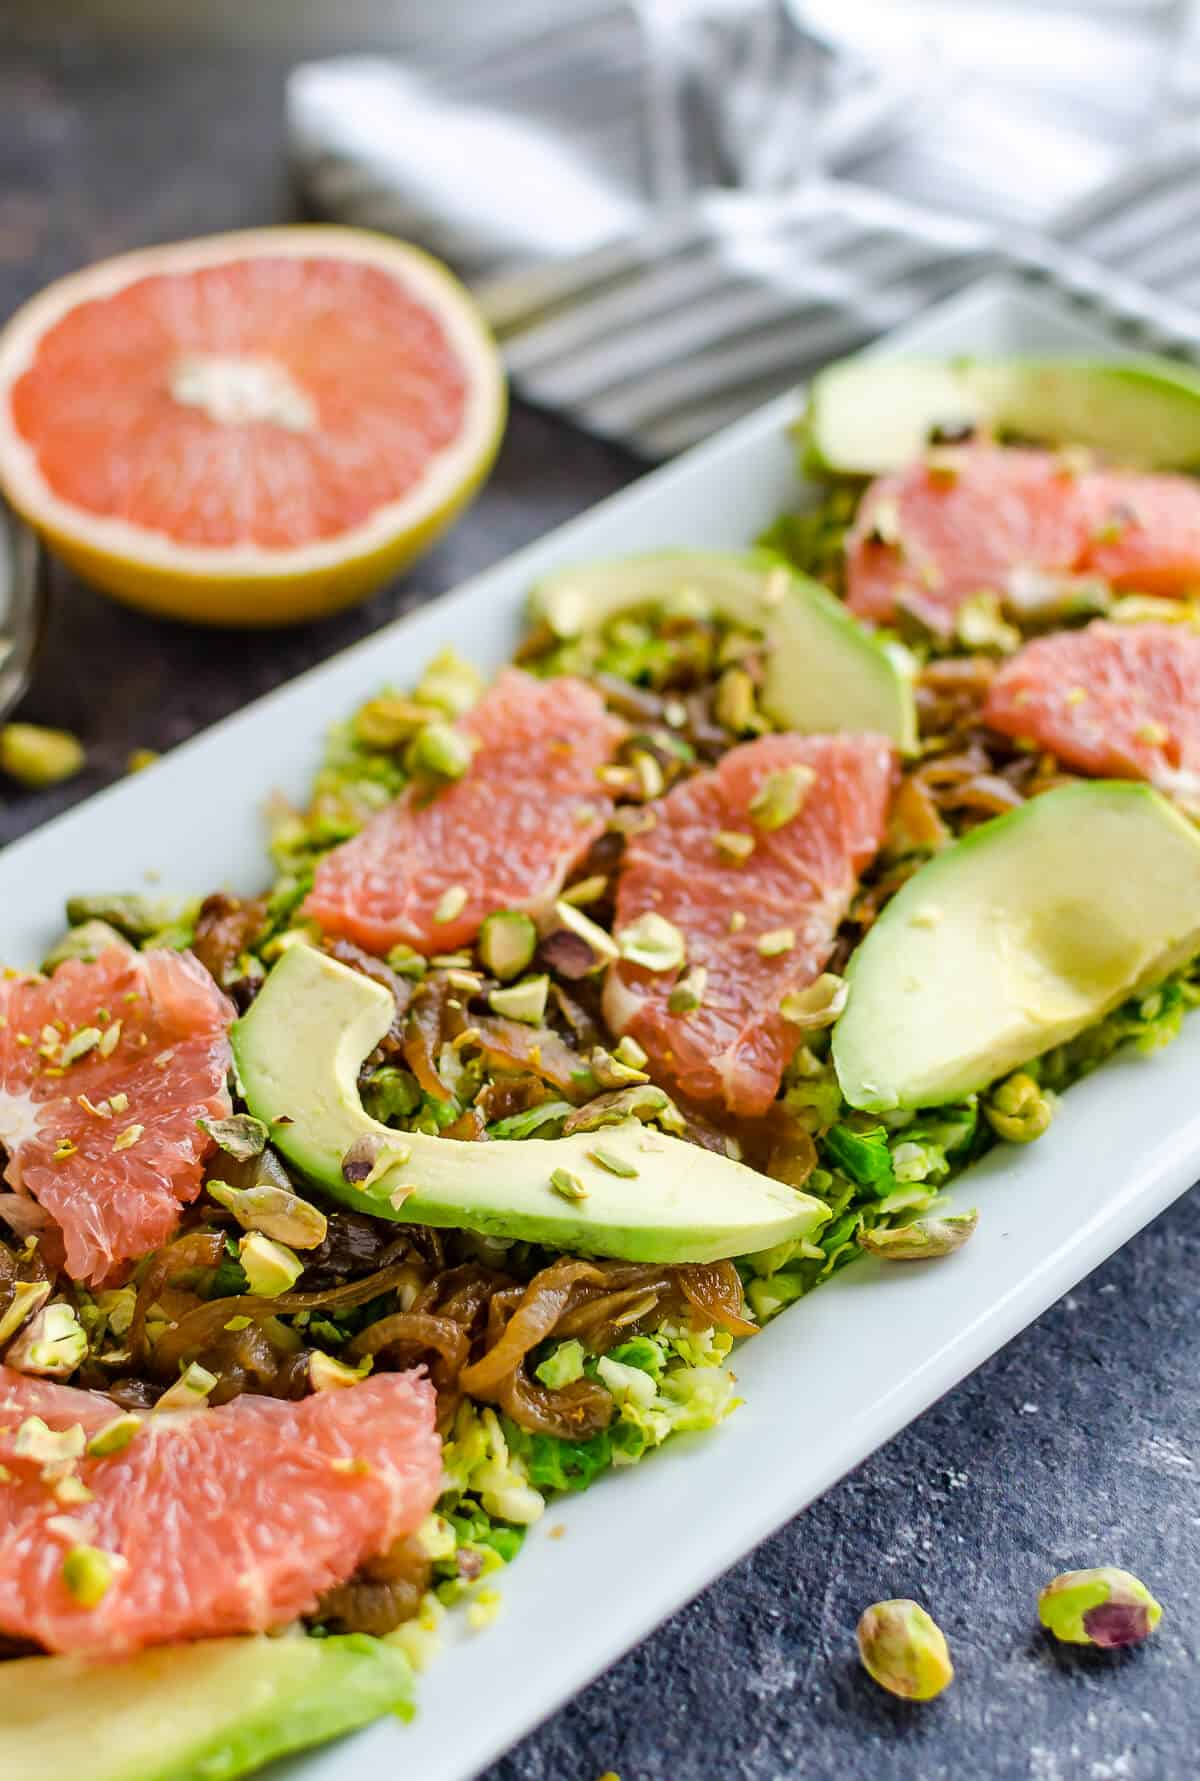 chopped brussels sprouts salad on a rectangle white platter with caramelized onions, grapefruit segments, avocado slices, and pistachios